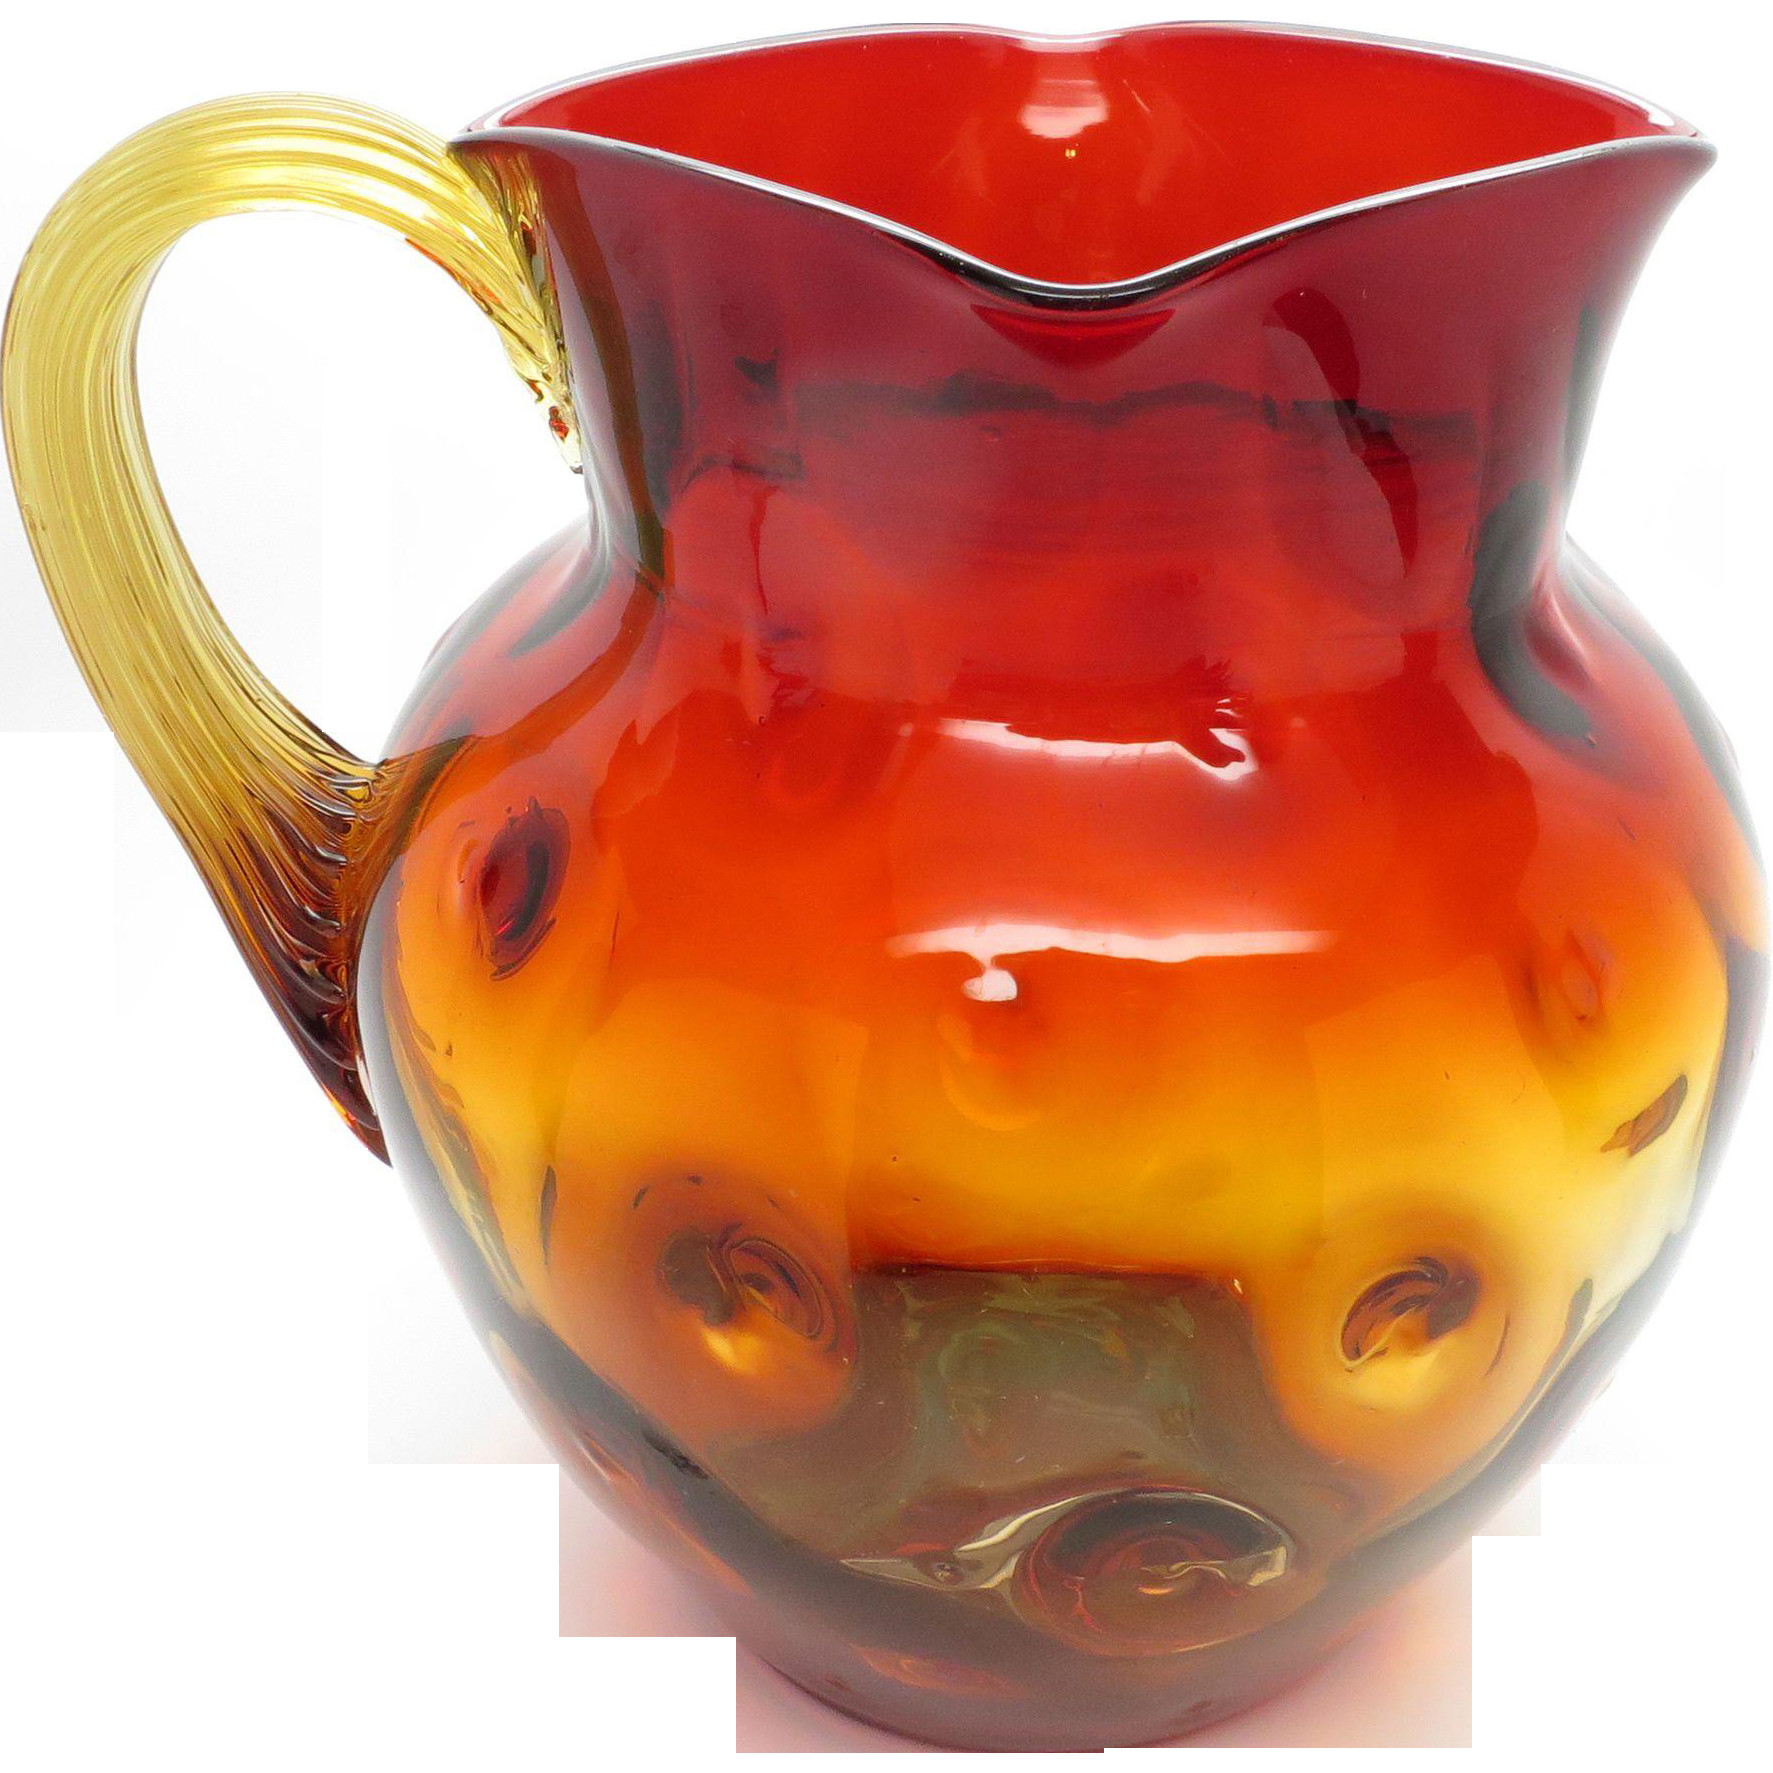 viking amberina glass vase of beautiful antique new england thumbprint amberina art glass pitcher pertaining to beautiful antique new england thumbprint amberina art glass pitcher with square mouth applied reeded handle www rubylane com rubylanecom